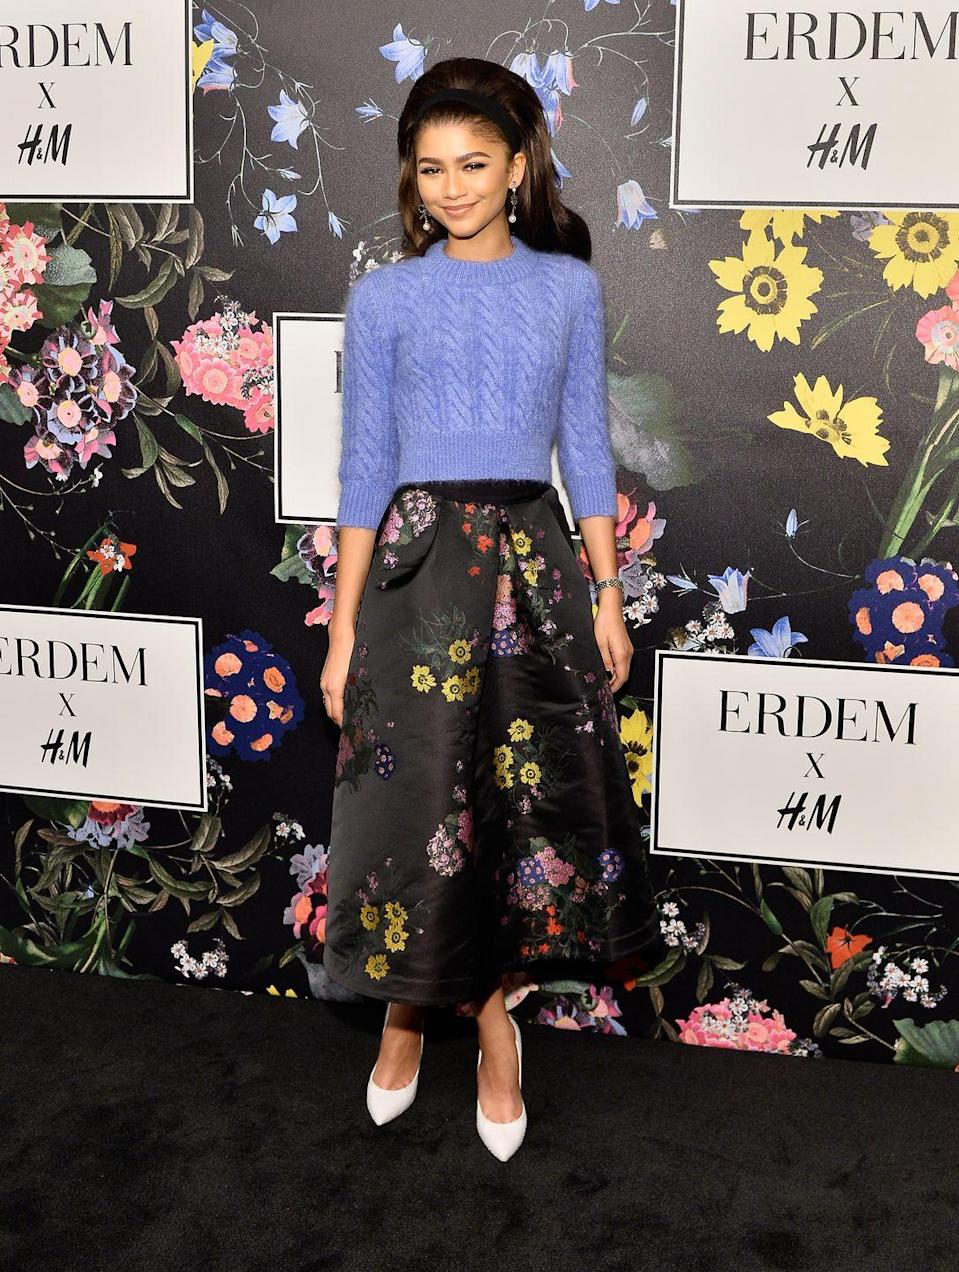 <p>For the Erdem x H&M Runway Show, she sported the collection with a playful '60s look. Can't get enough of this knit sweater and floral skirt sitch!</p>